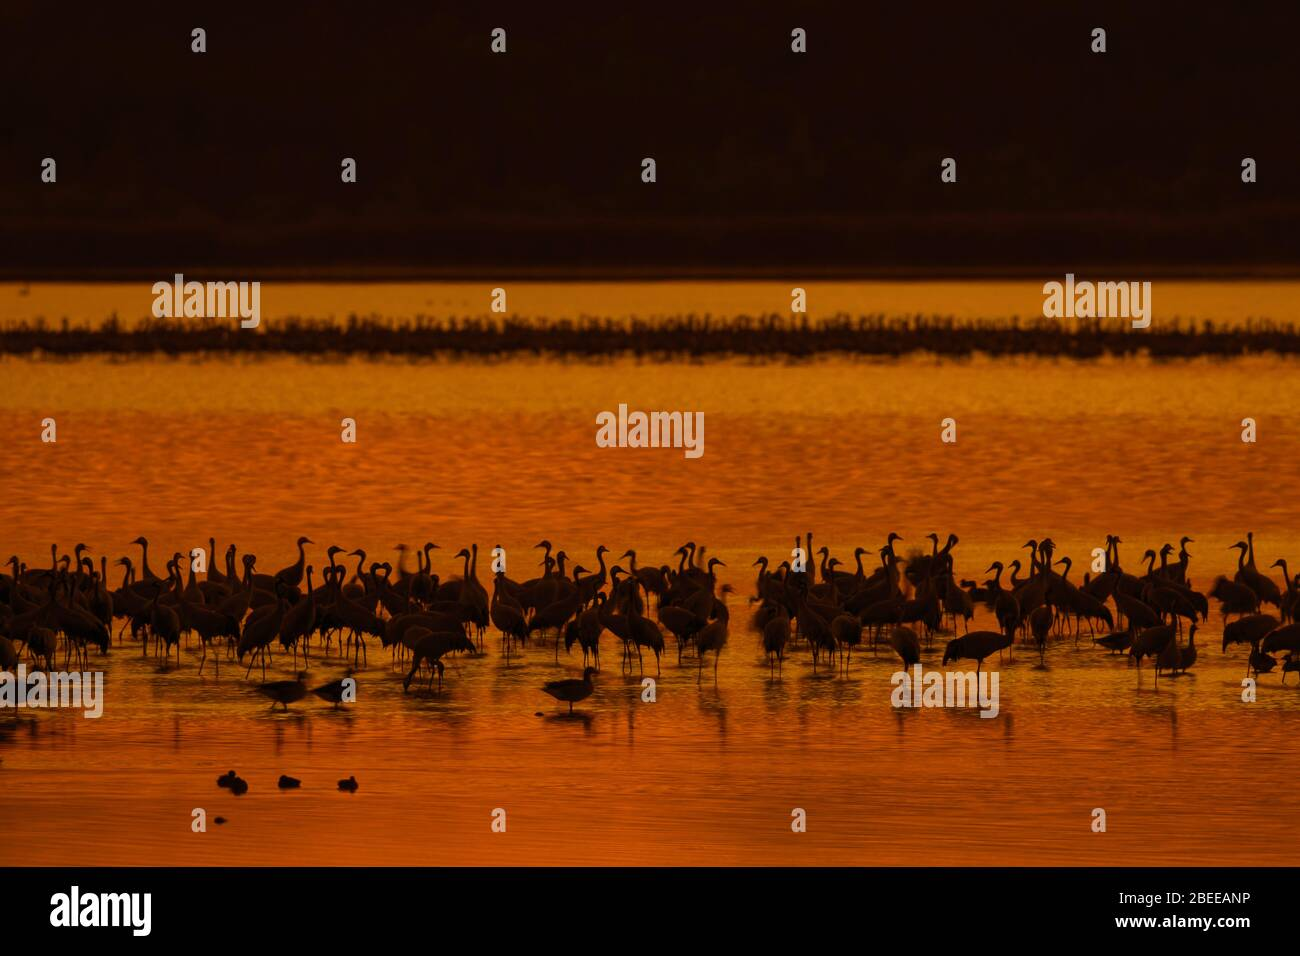 Flock of common cranes / Eurasian crane (Grus grus) group resting in shallow water, silhouetted at sunset in autumn / fall Stock Photo